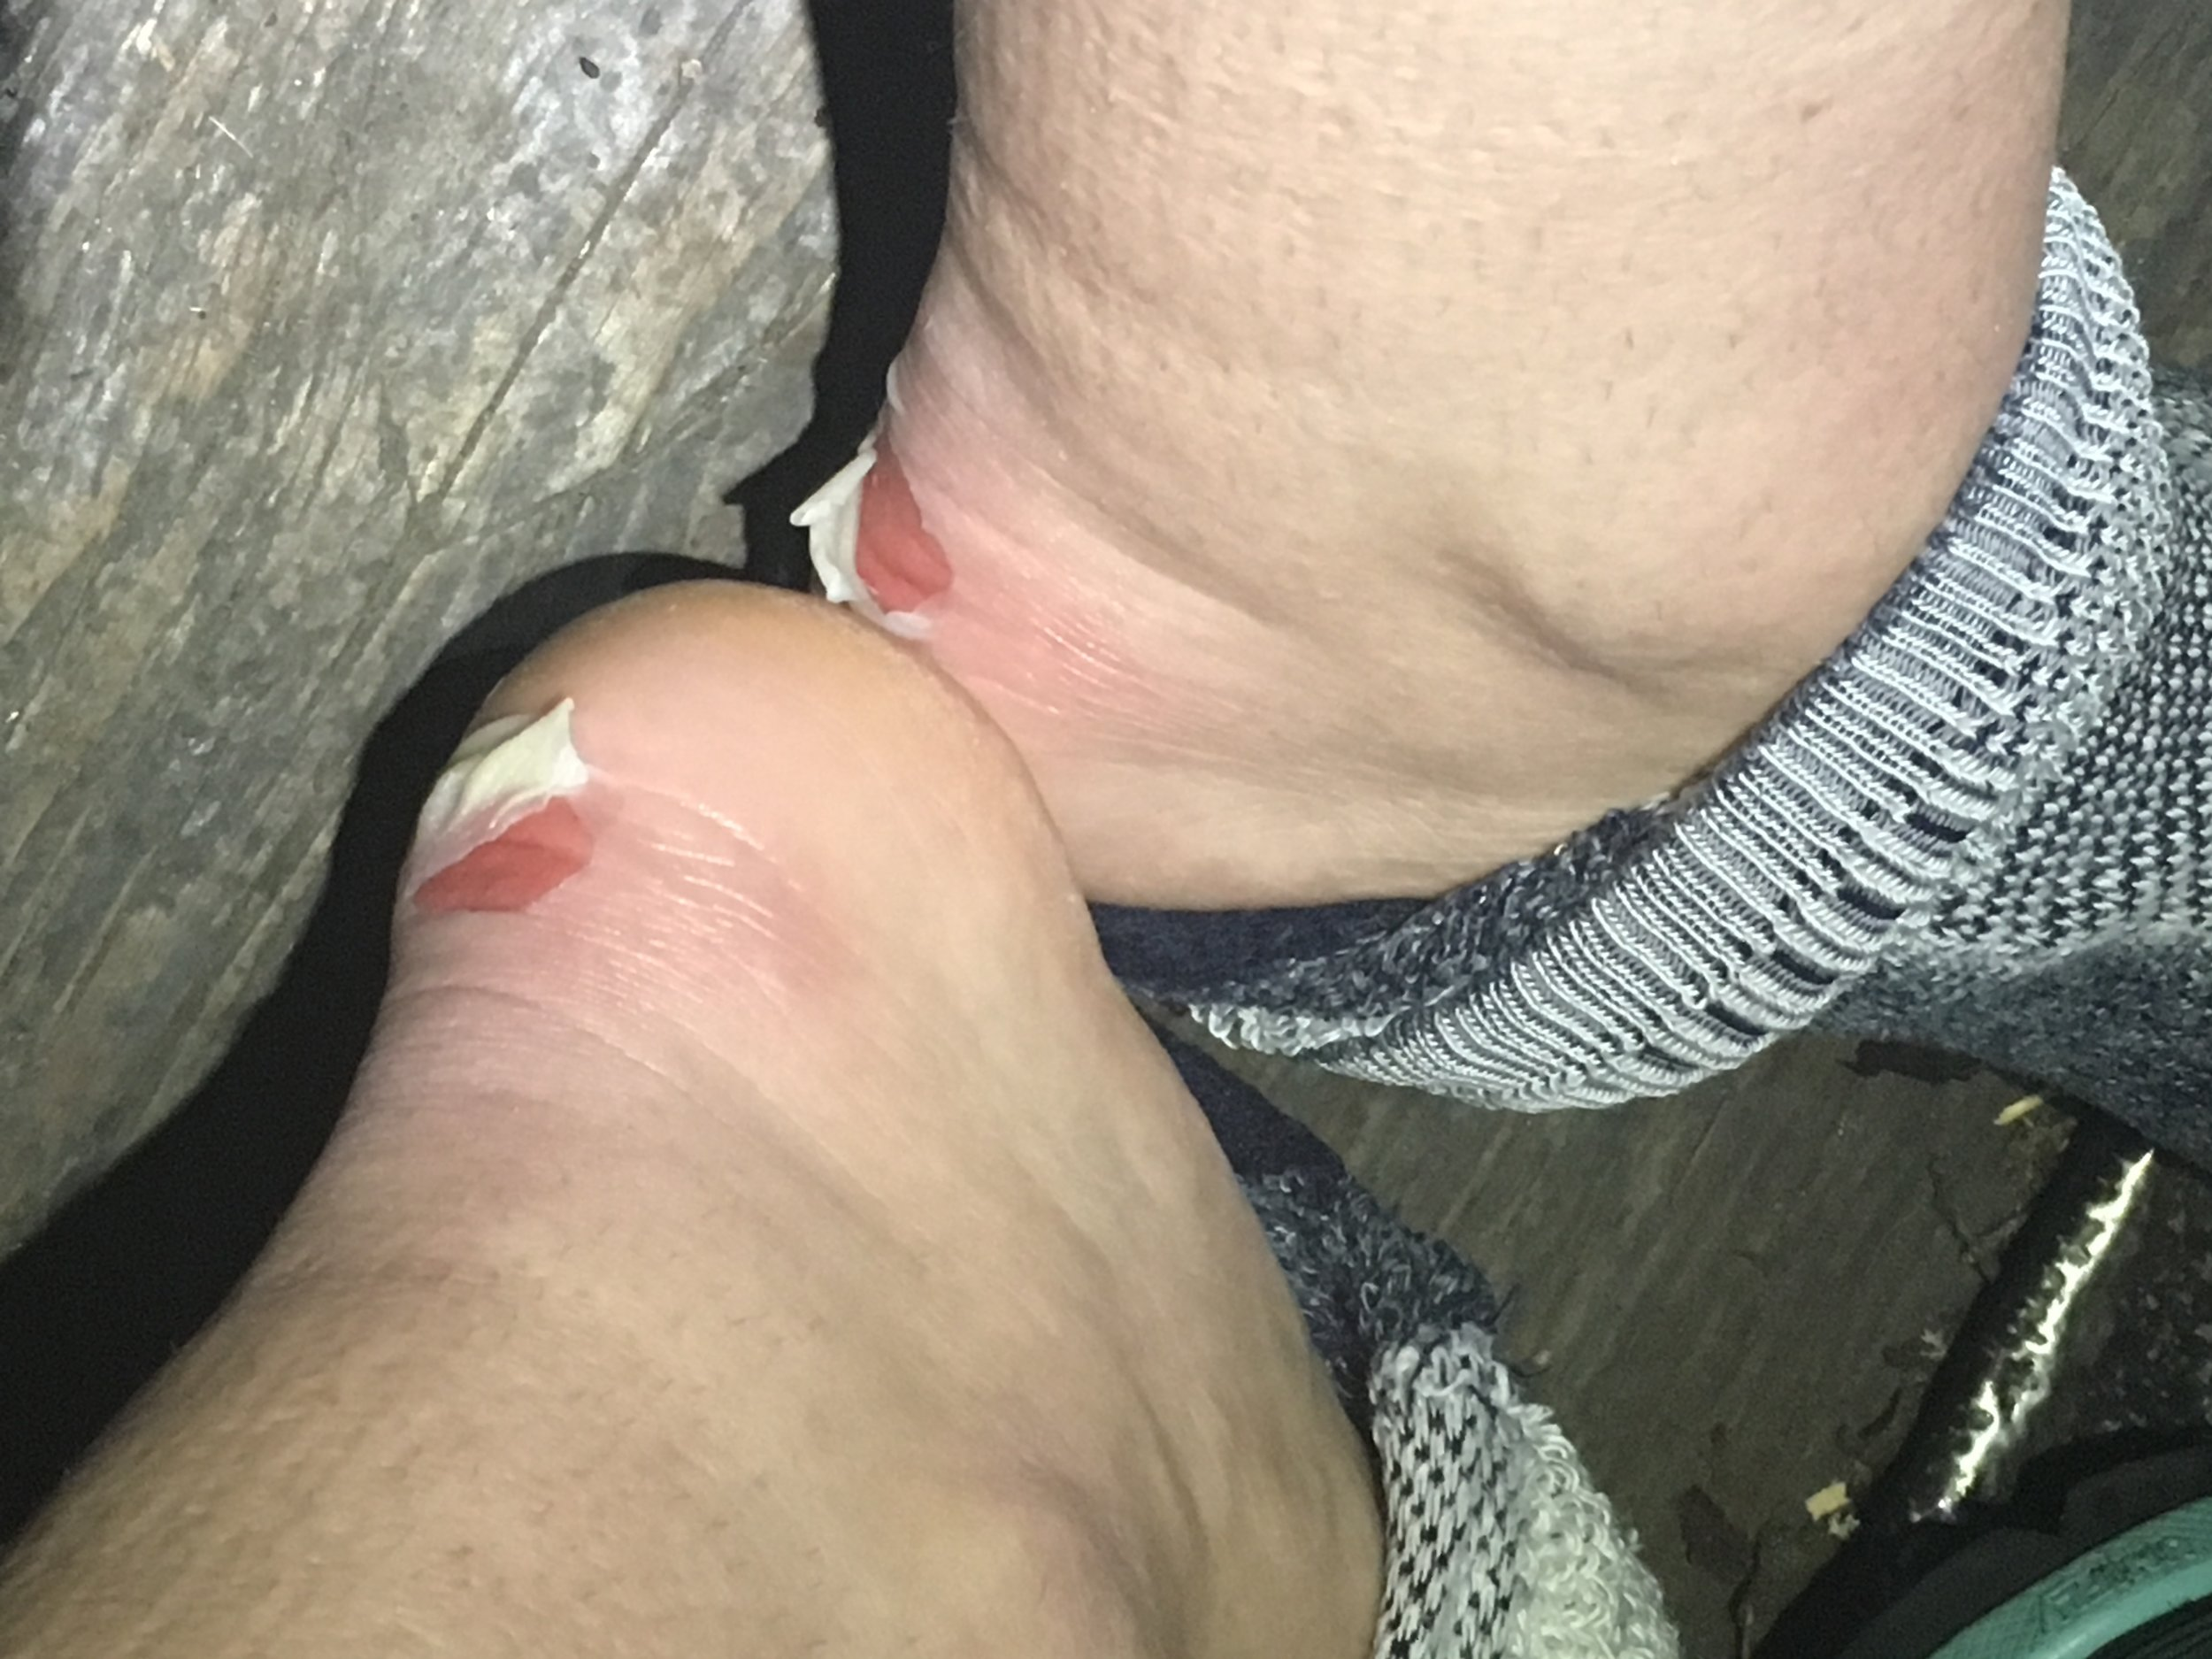 Hiking with blisters sucks